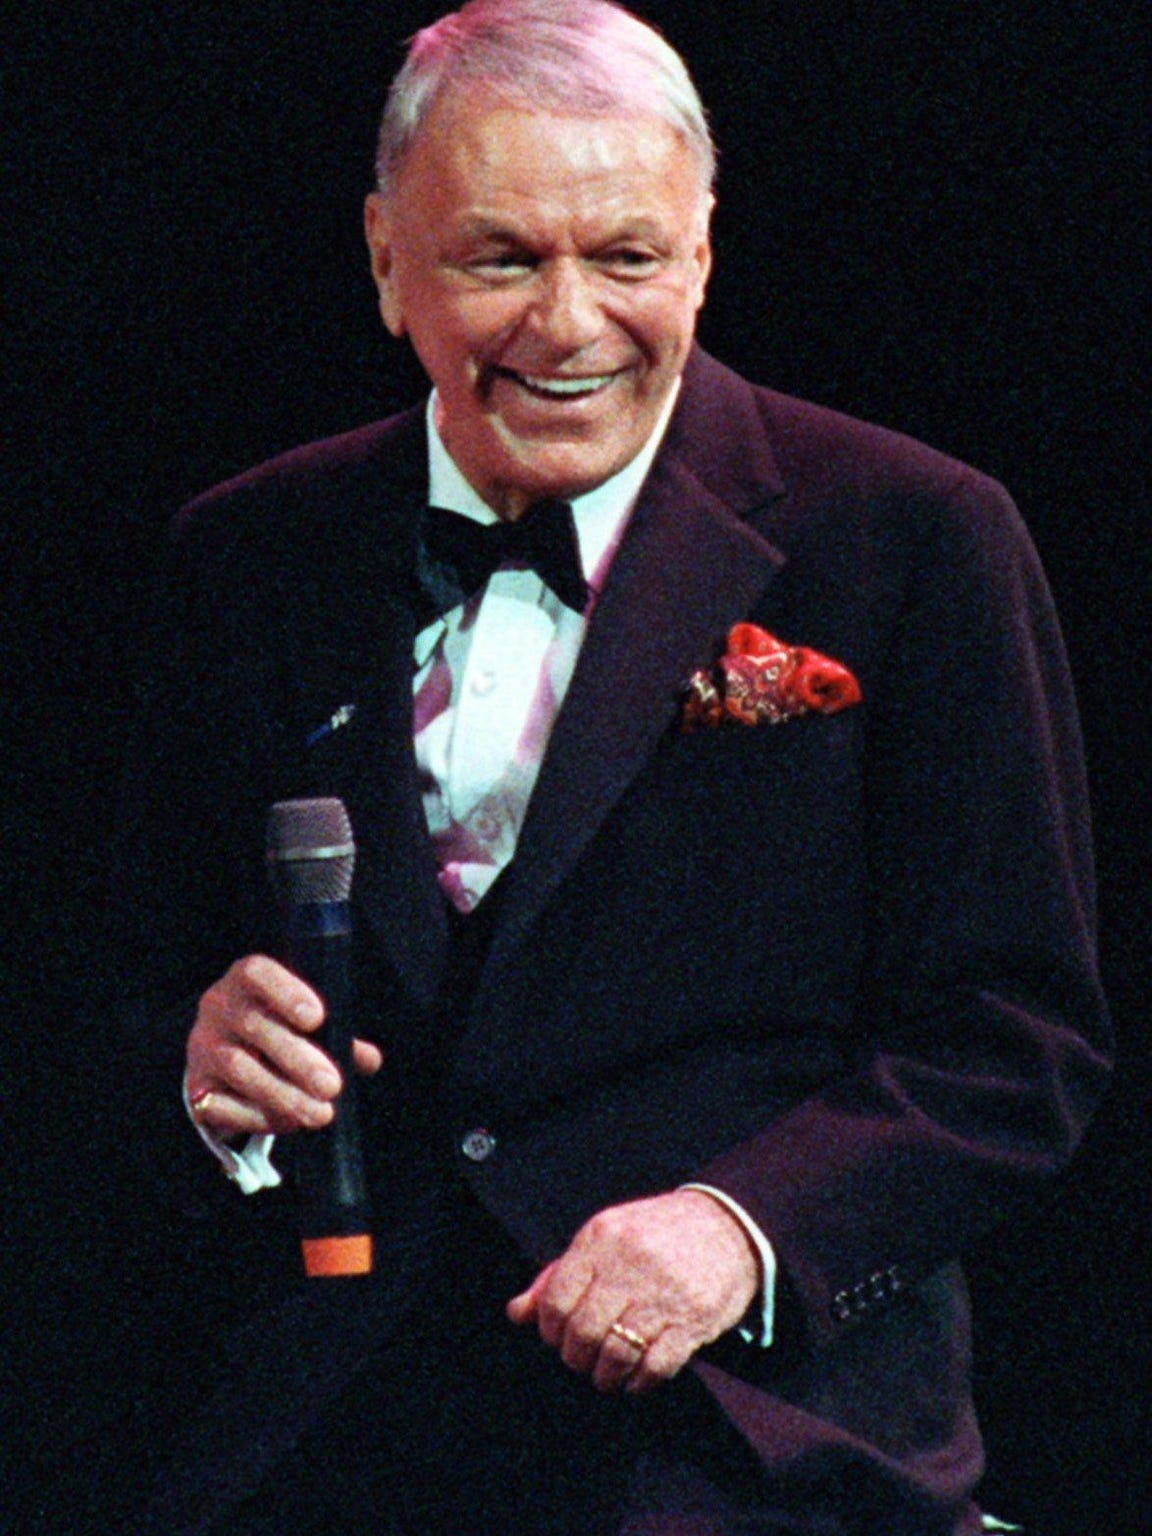 This is a Dec. 13, 1990 file photo of Frank Sinatra